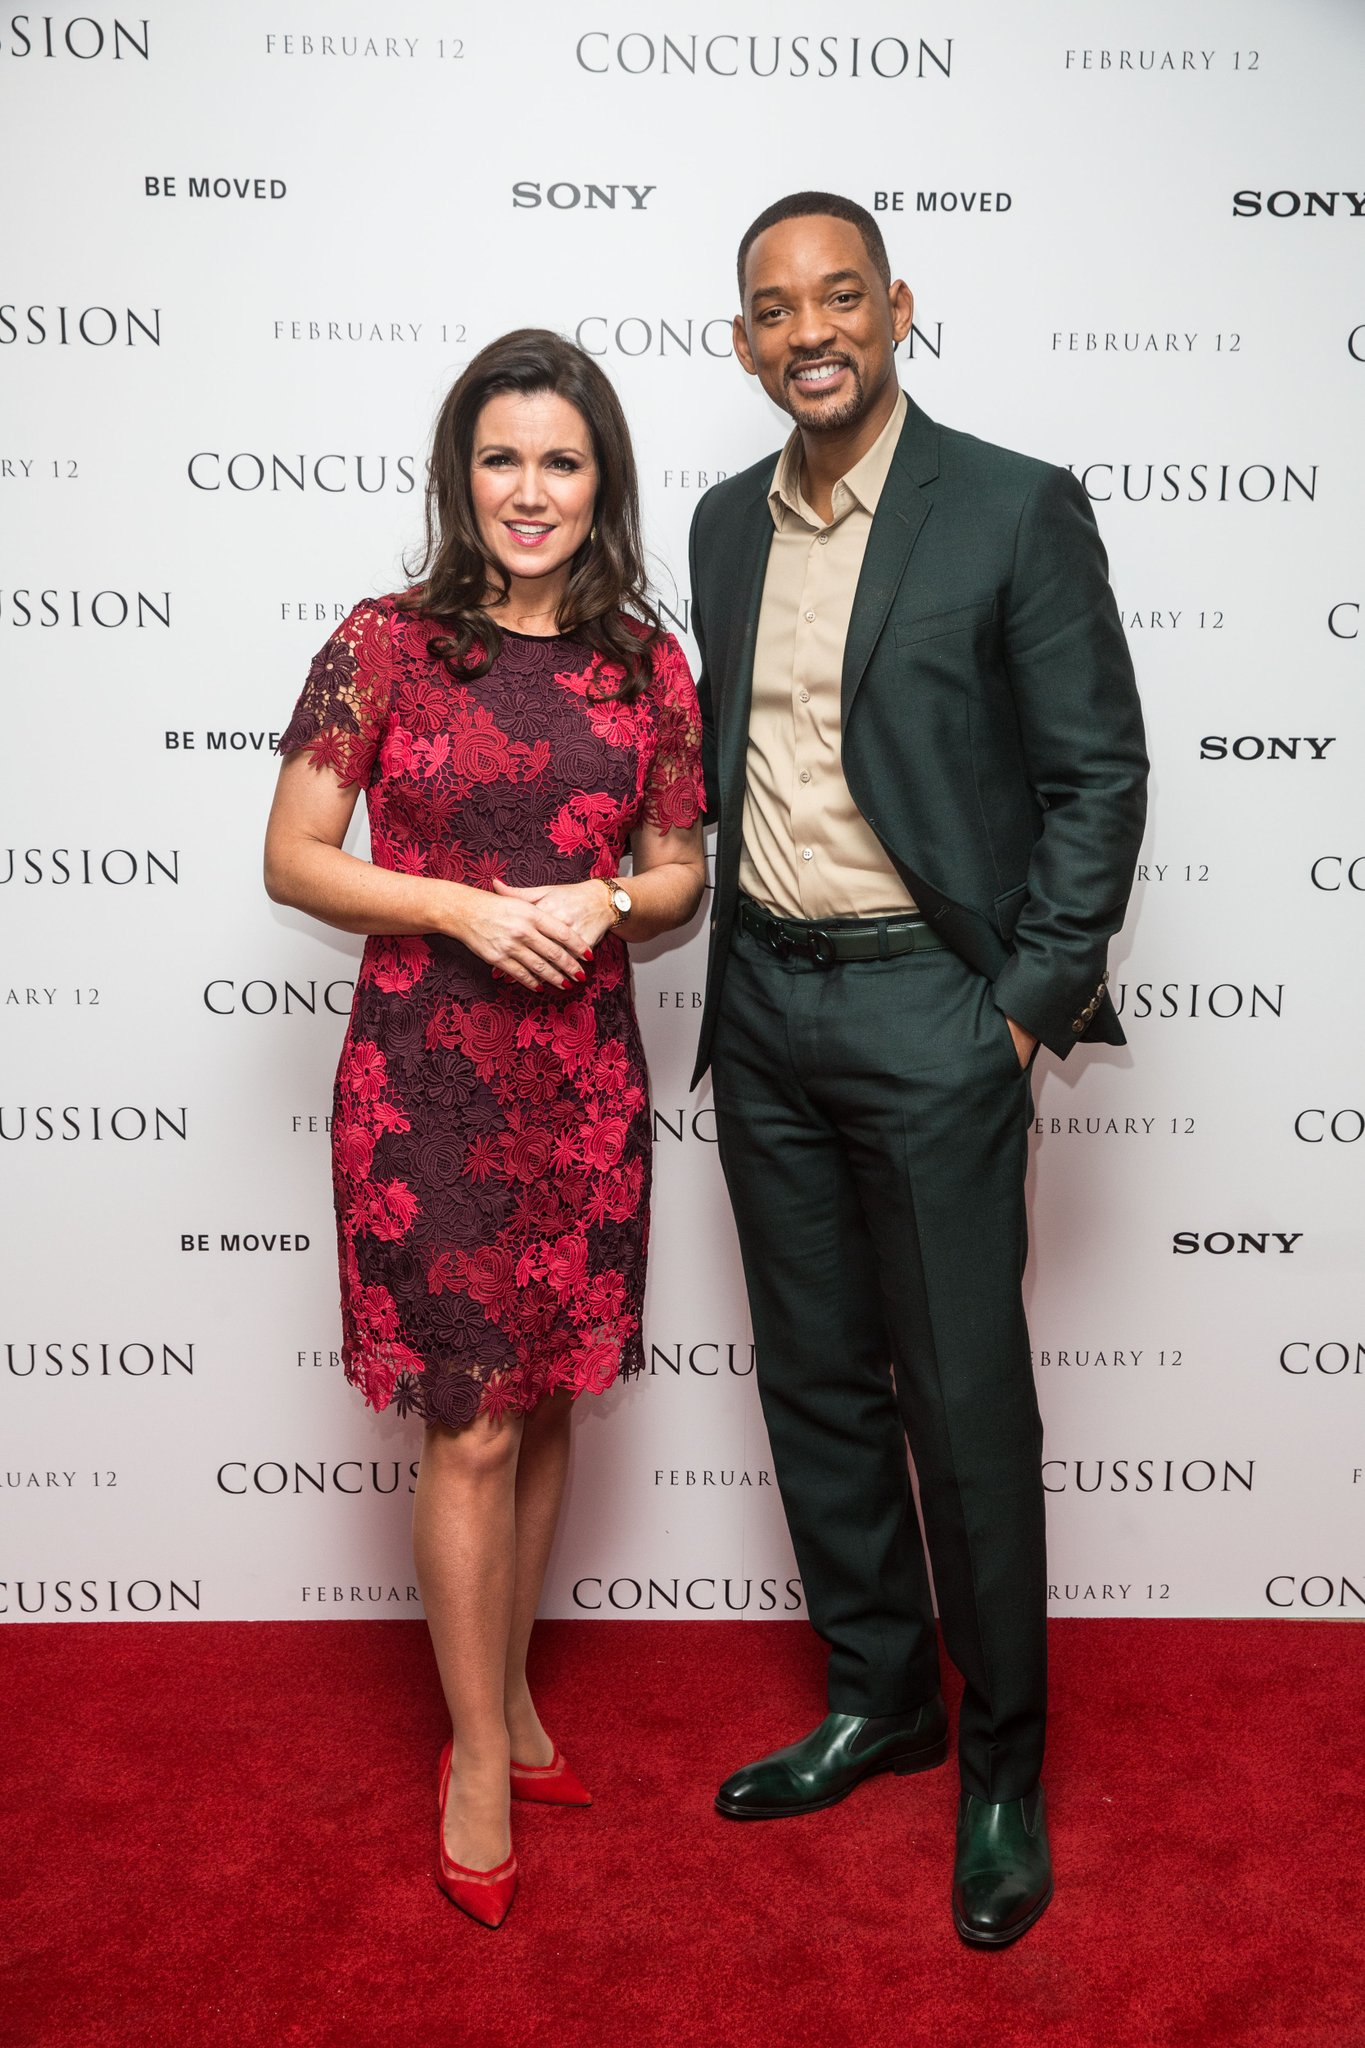 RT @SonyPicturesUK: #TBT Will Smith joined @susannareid100 for an exclusive celeb screening of #ConcussionMovie with @TelegraphFilm 🎬 https…